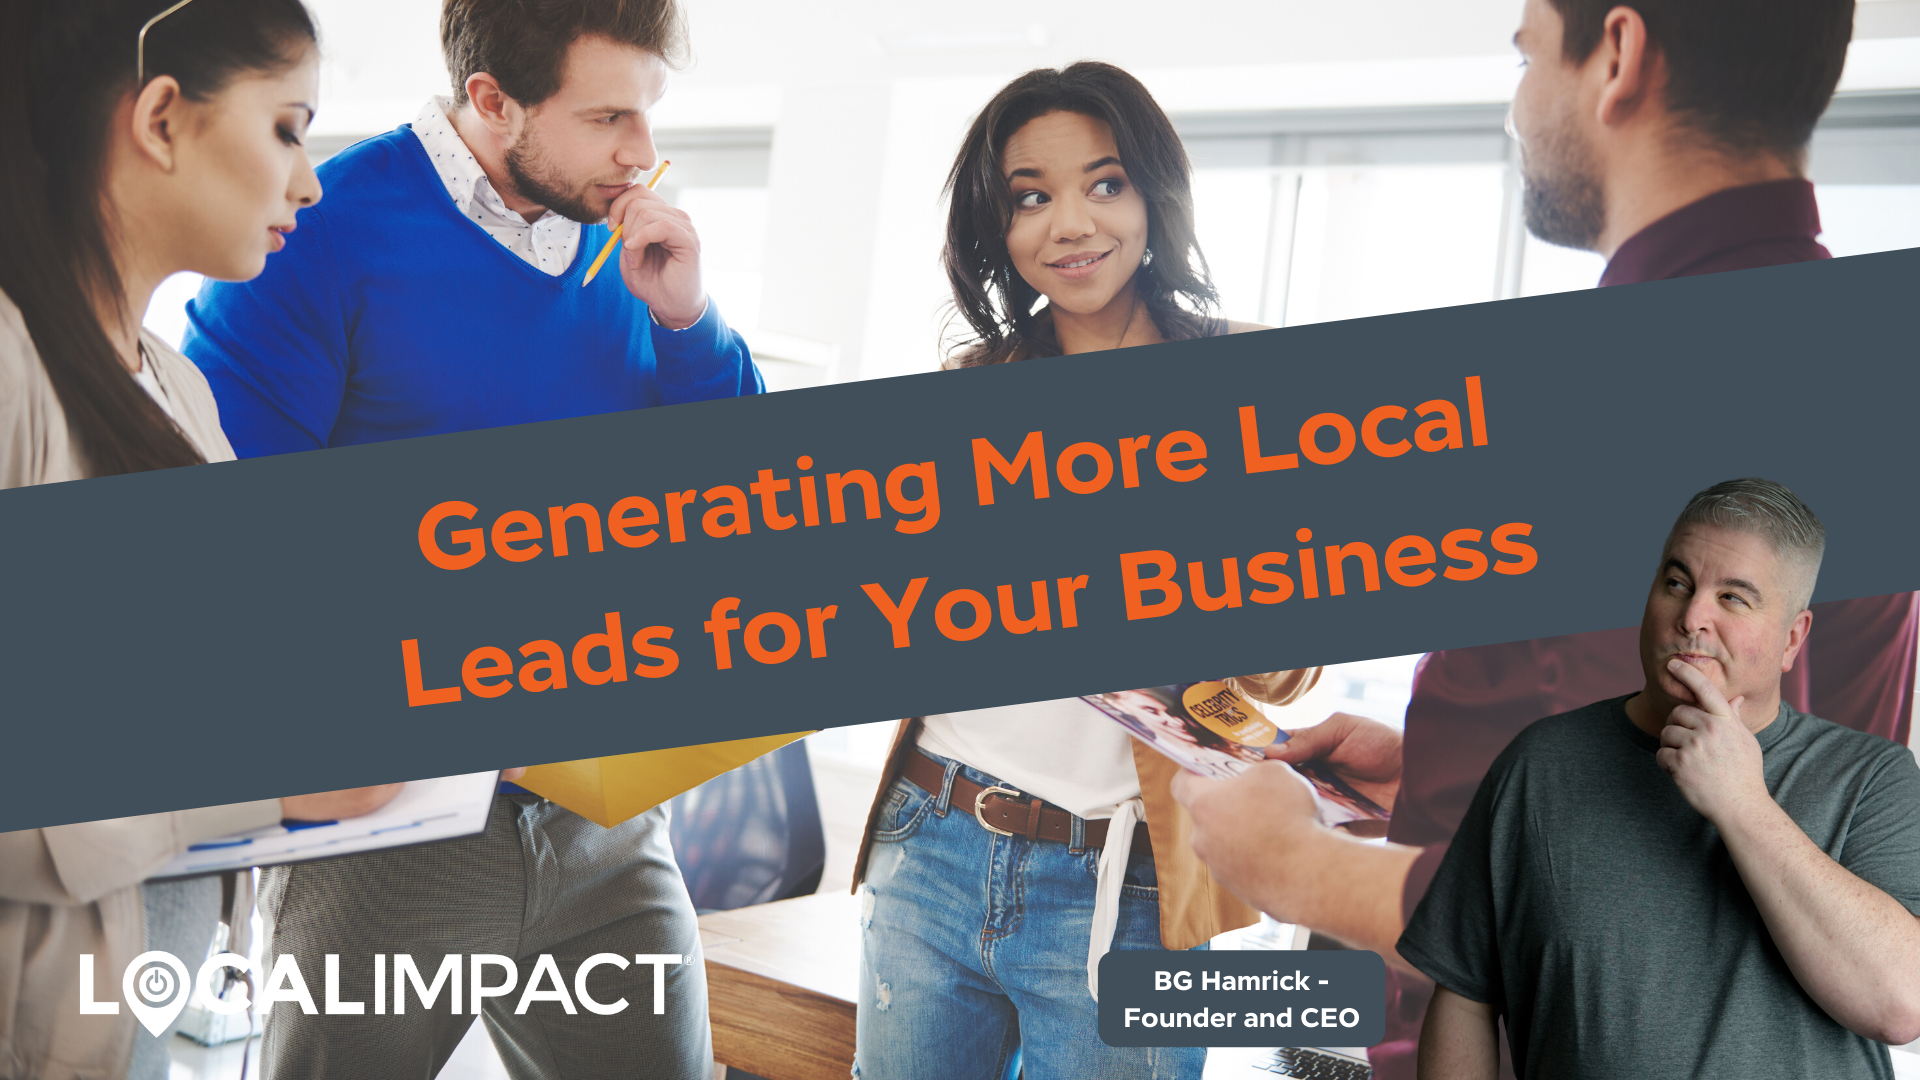 Generating More Local Leads for Your Business - Local Impact Blog